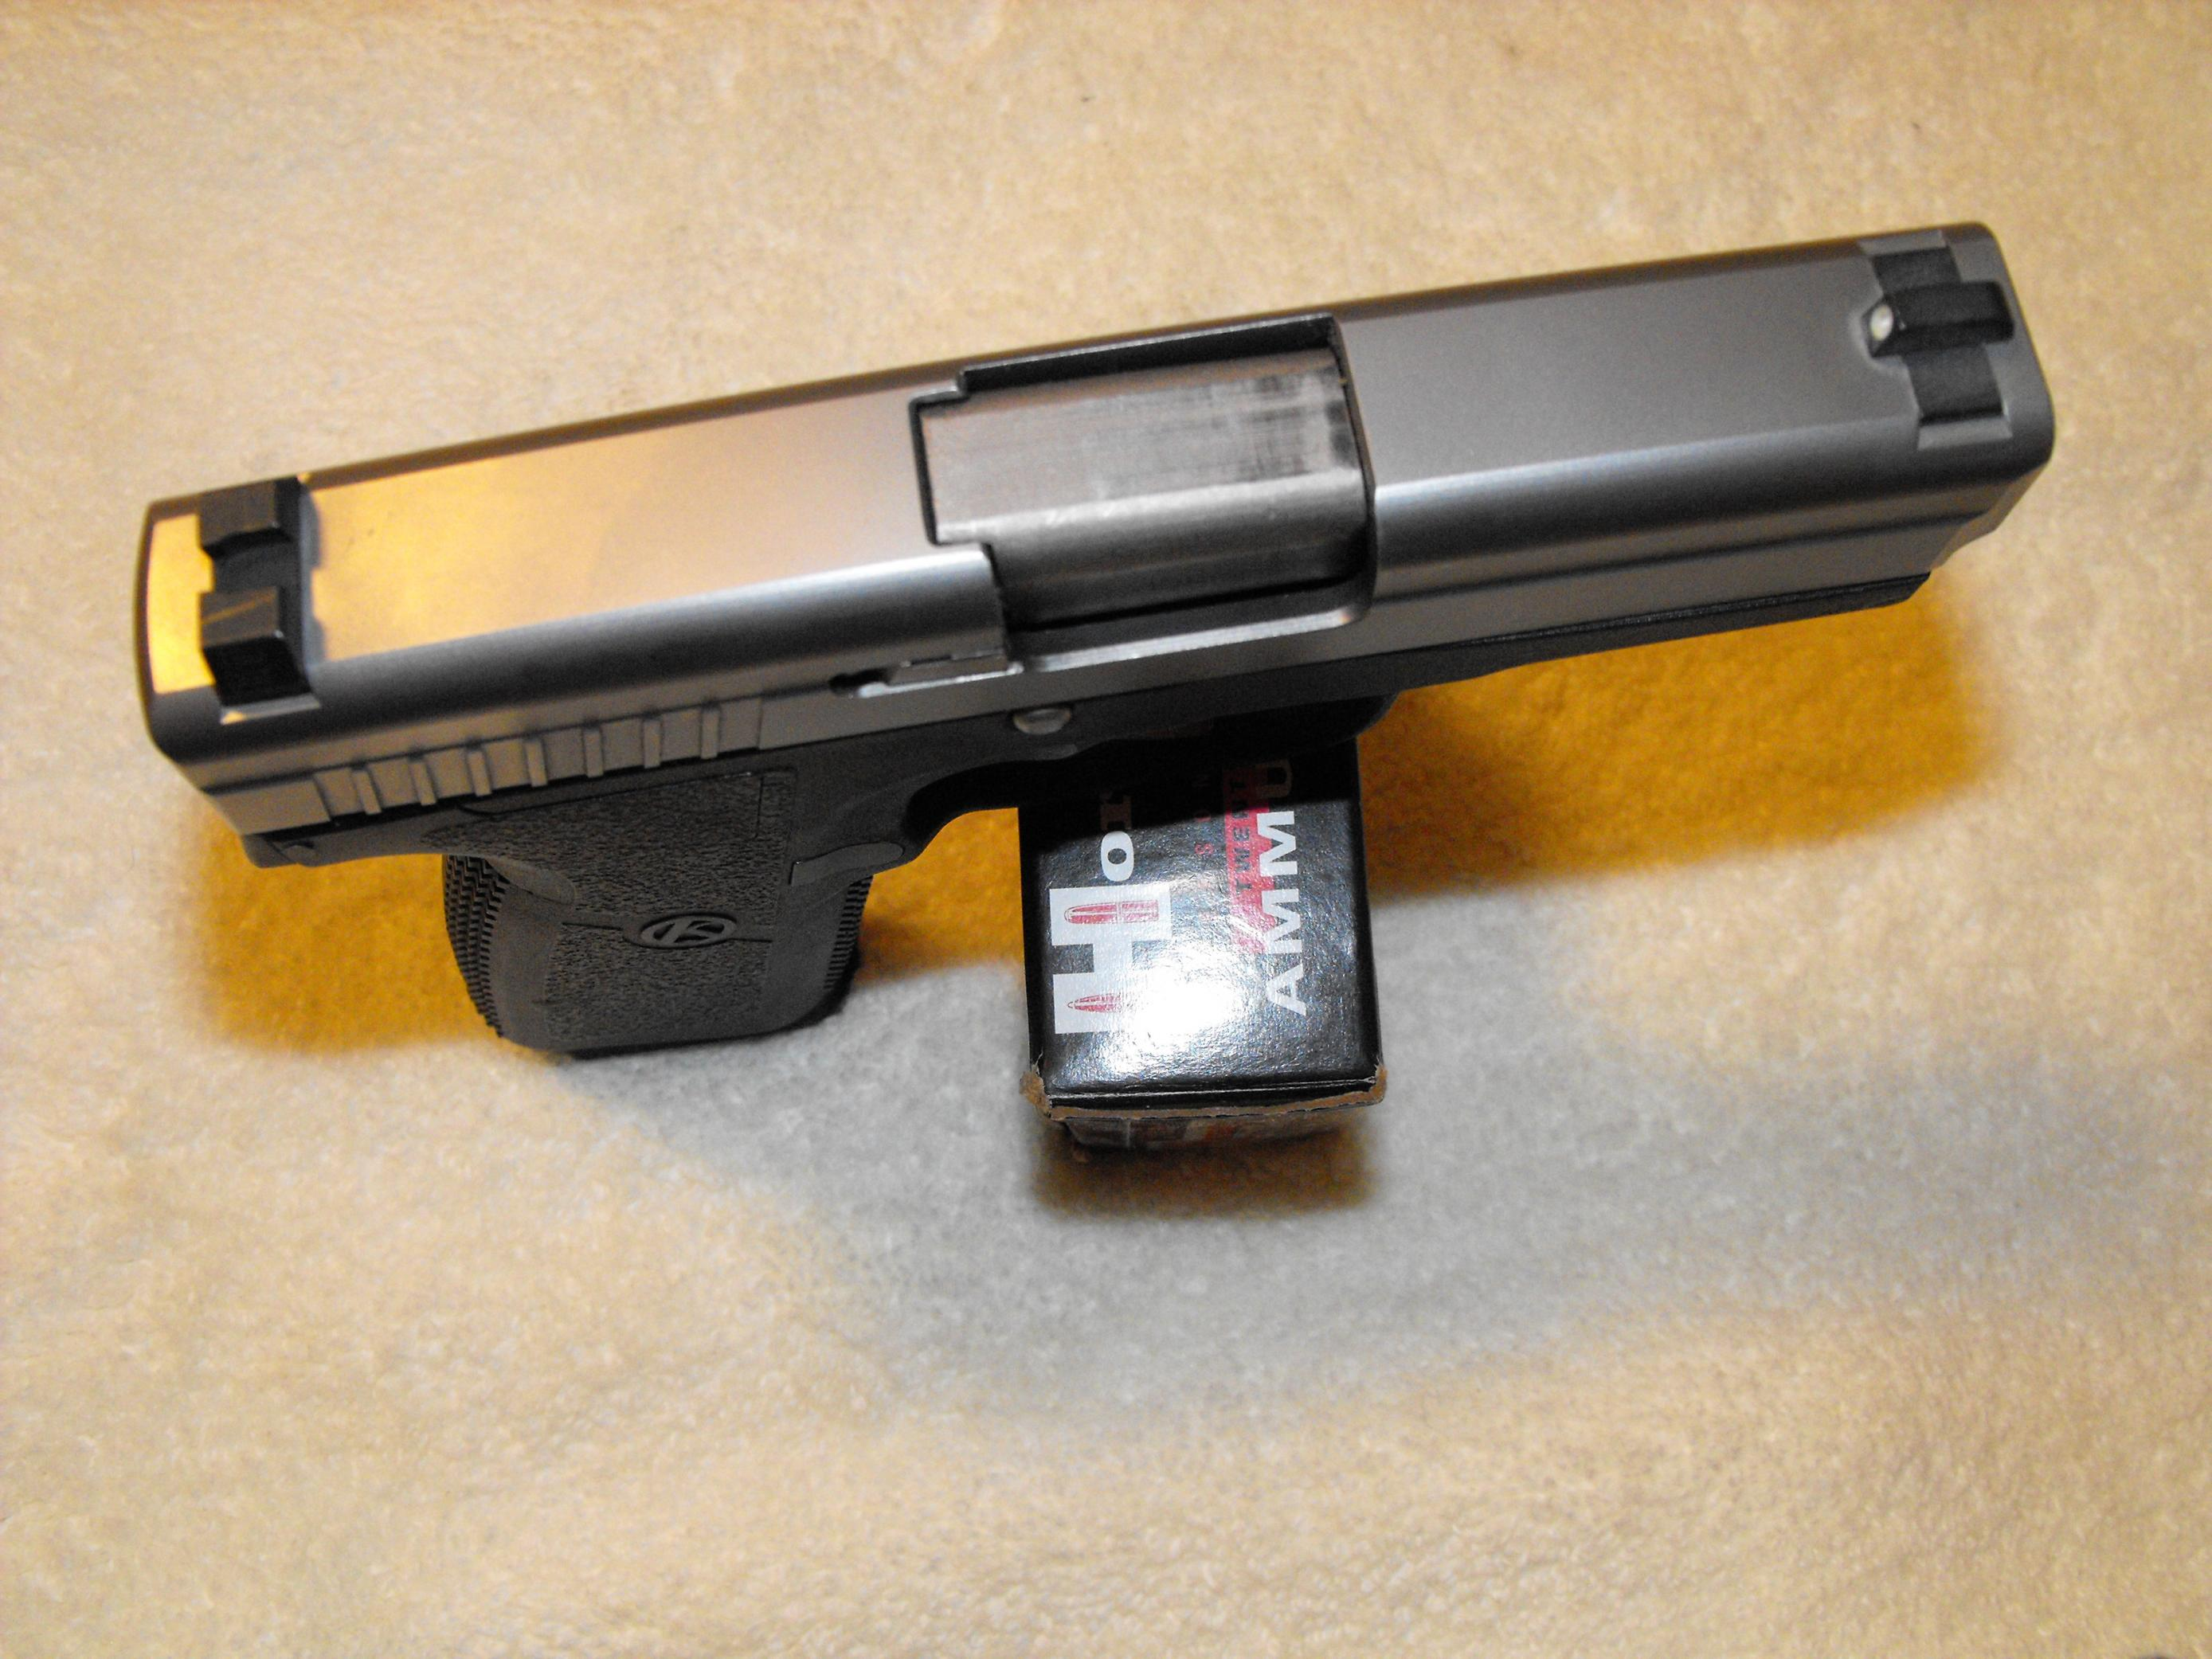 Please recommend a very concealable 45 ACP that's not a 1911-dscf0414.jpg